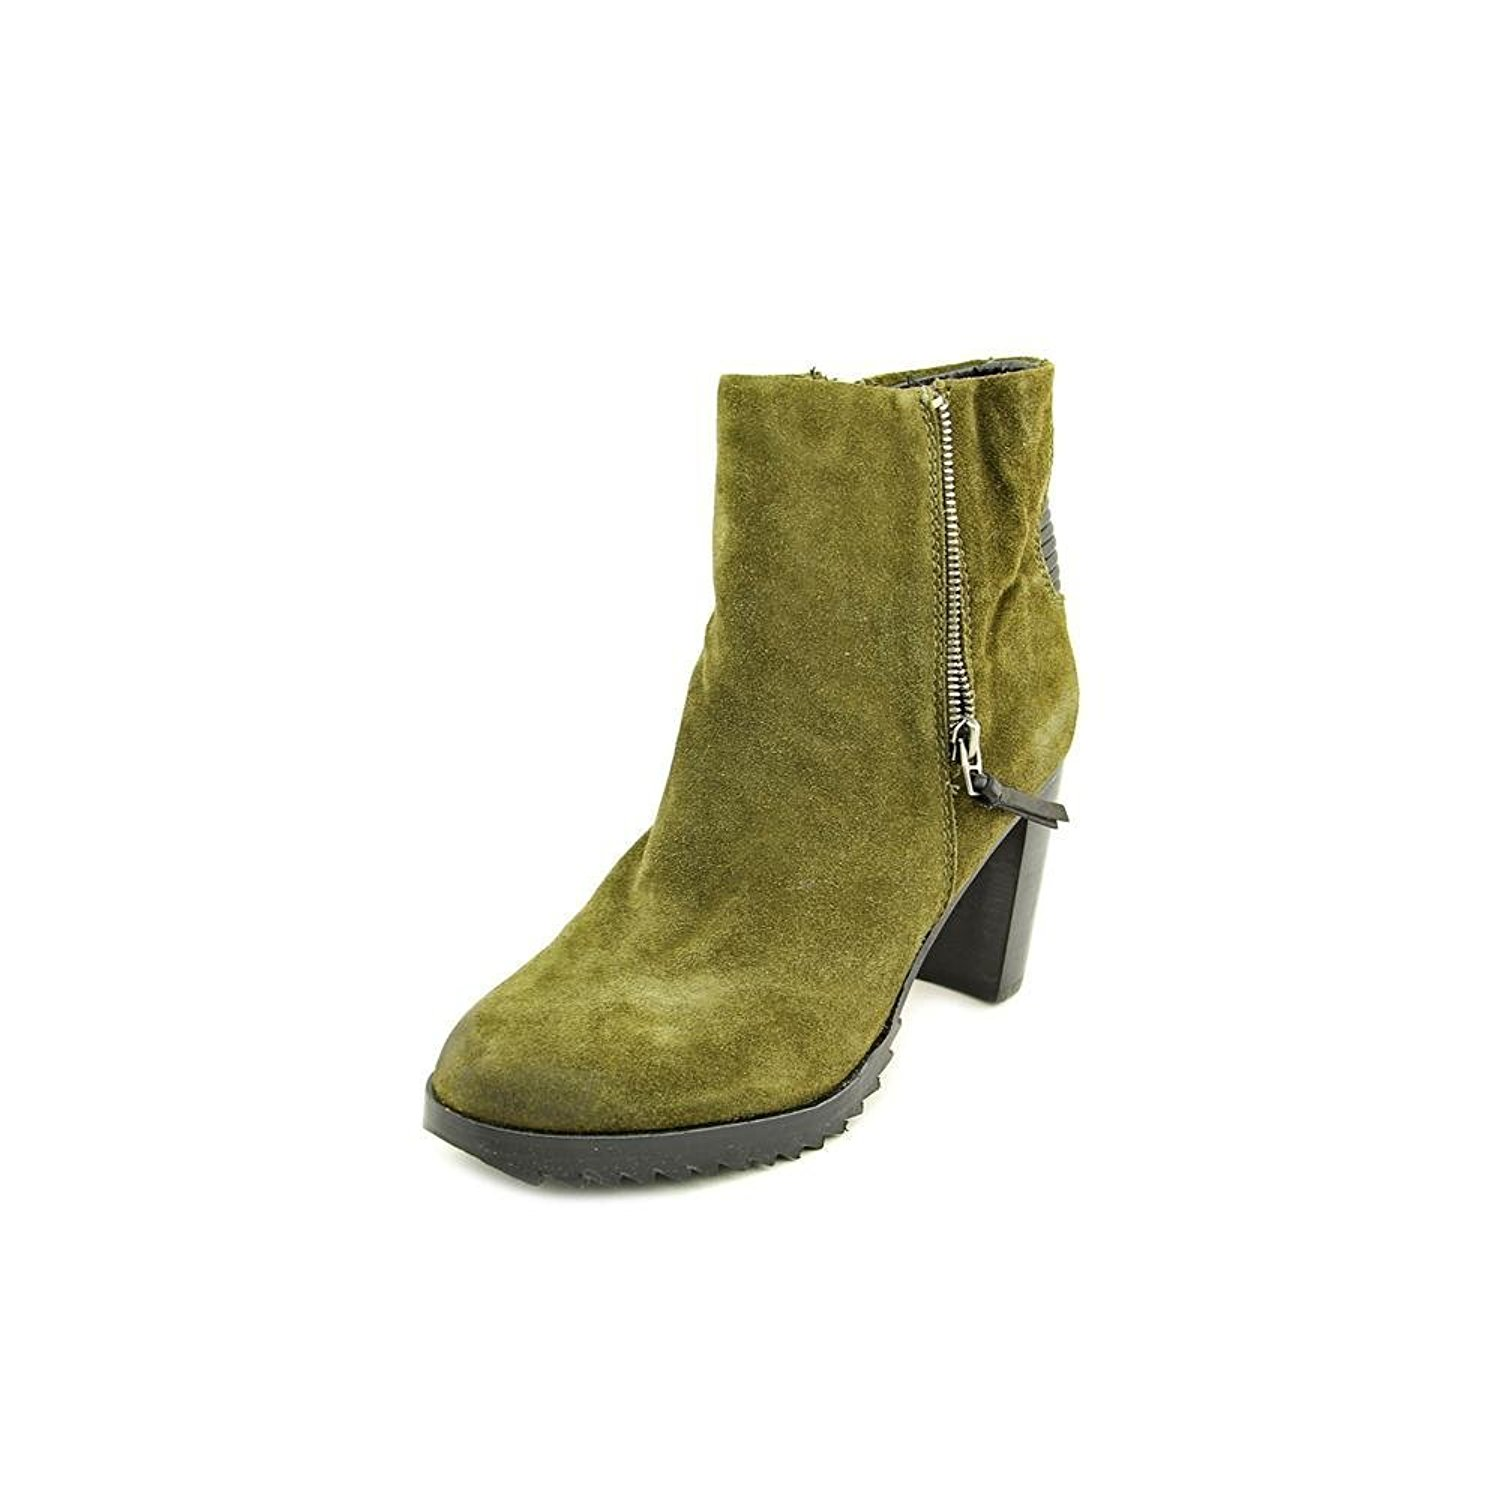 DV by Dolce Vita Women's Icarus Ankle Boots